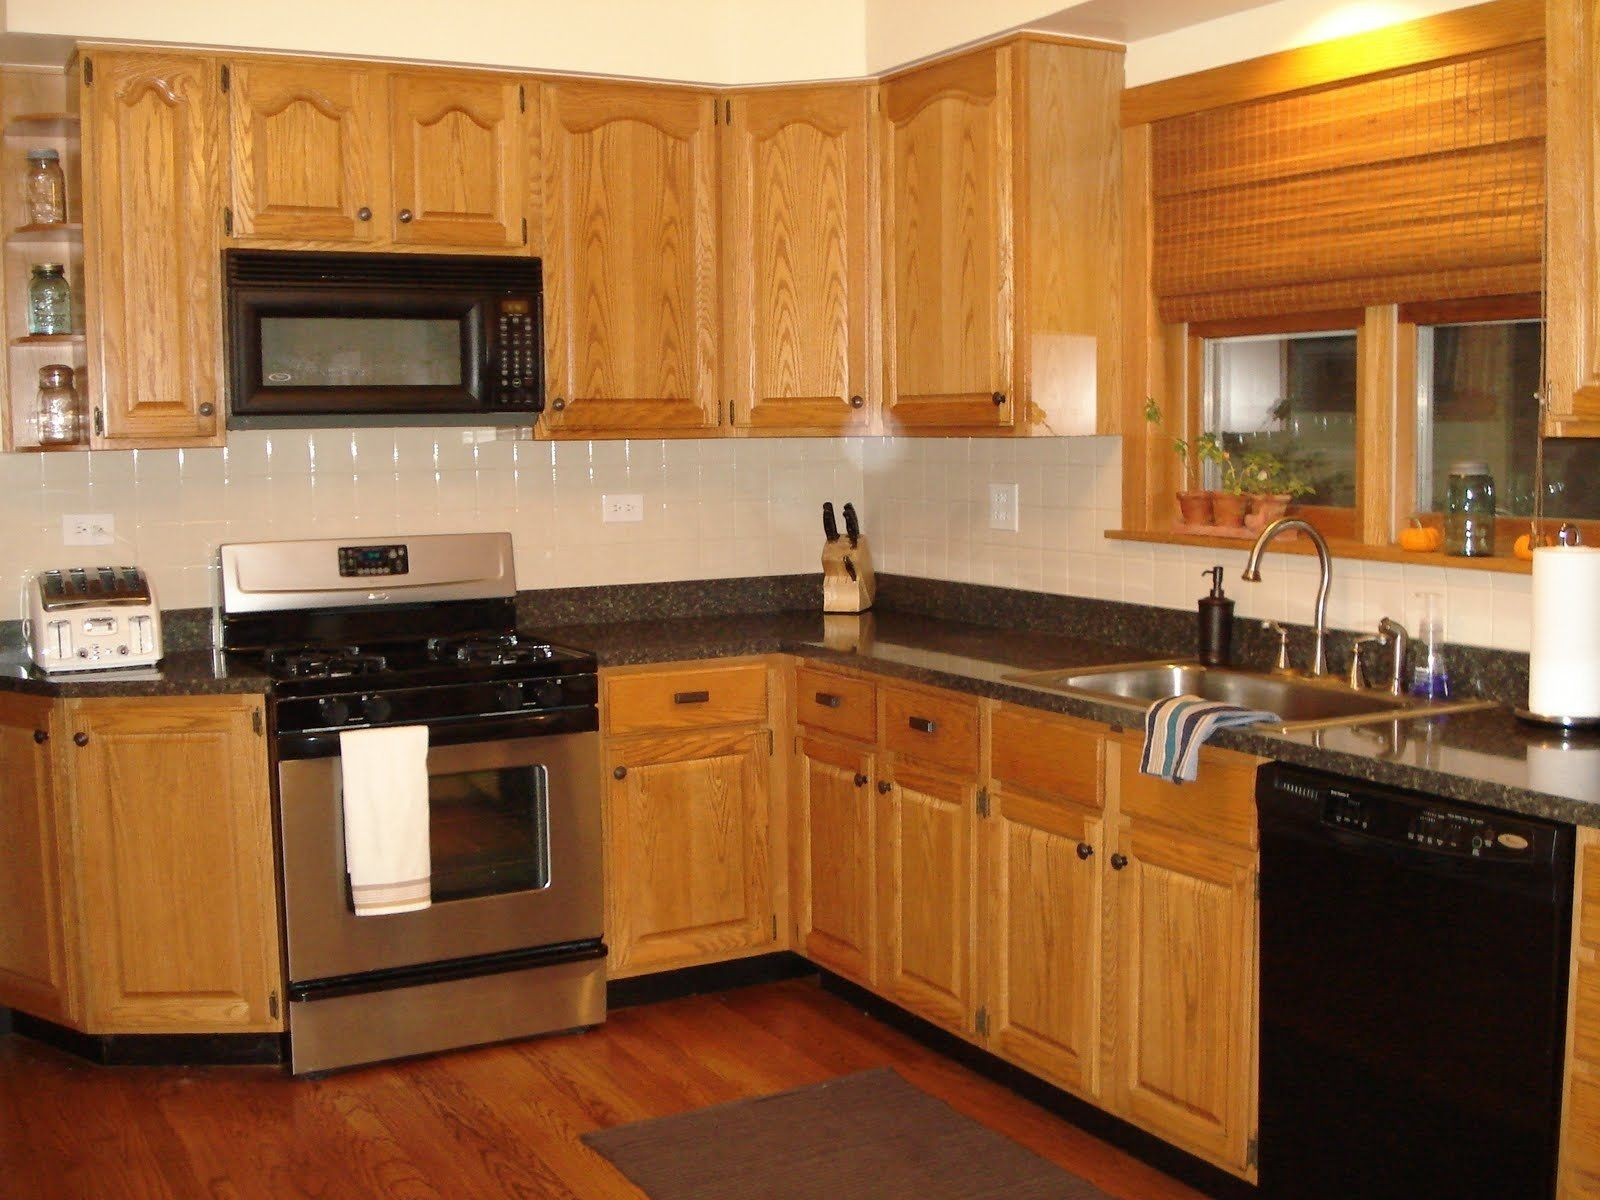 Wooden Oak Cabinet With Black Appliances Honey Oak Cabinets Oak Kitchen Cabinets Trendy Kitchen Backsplash